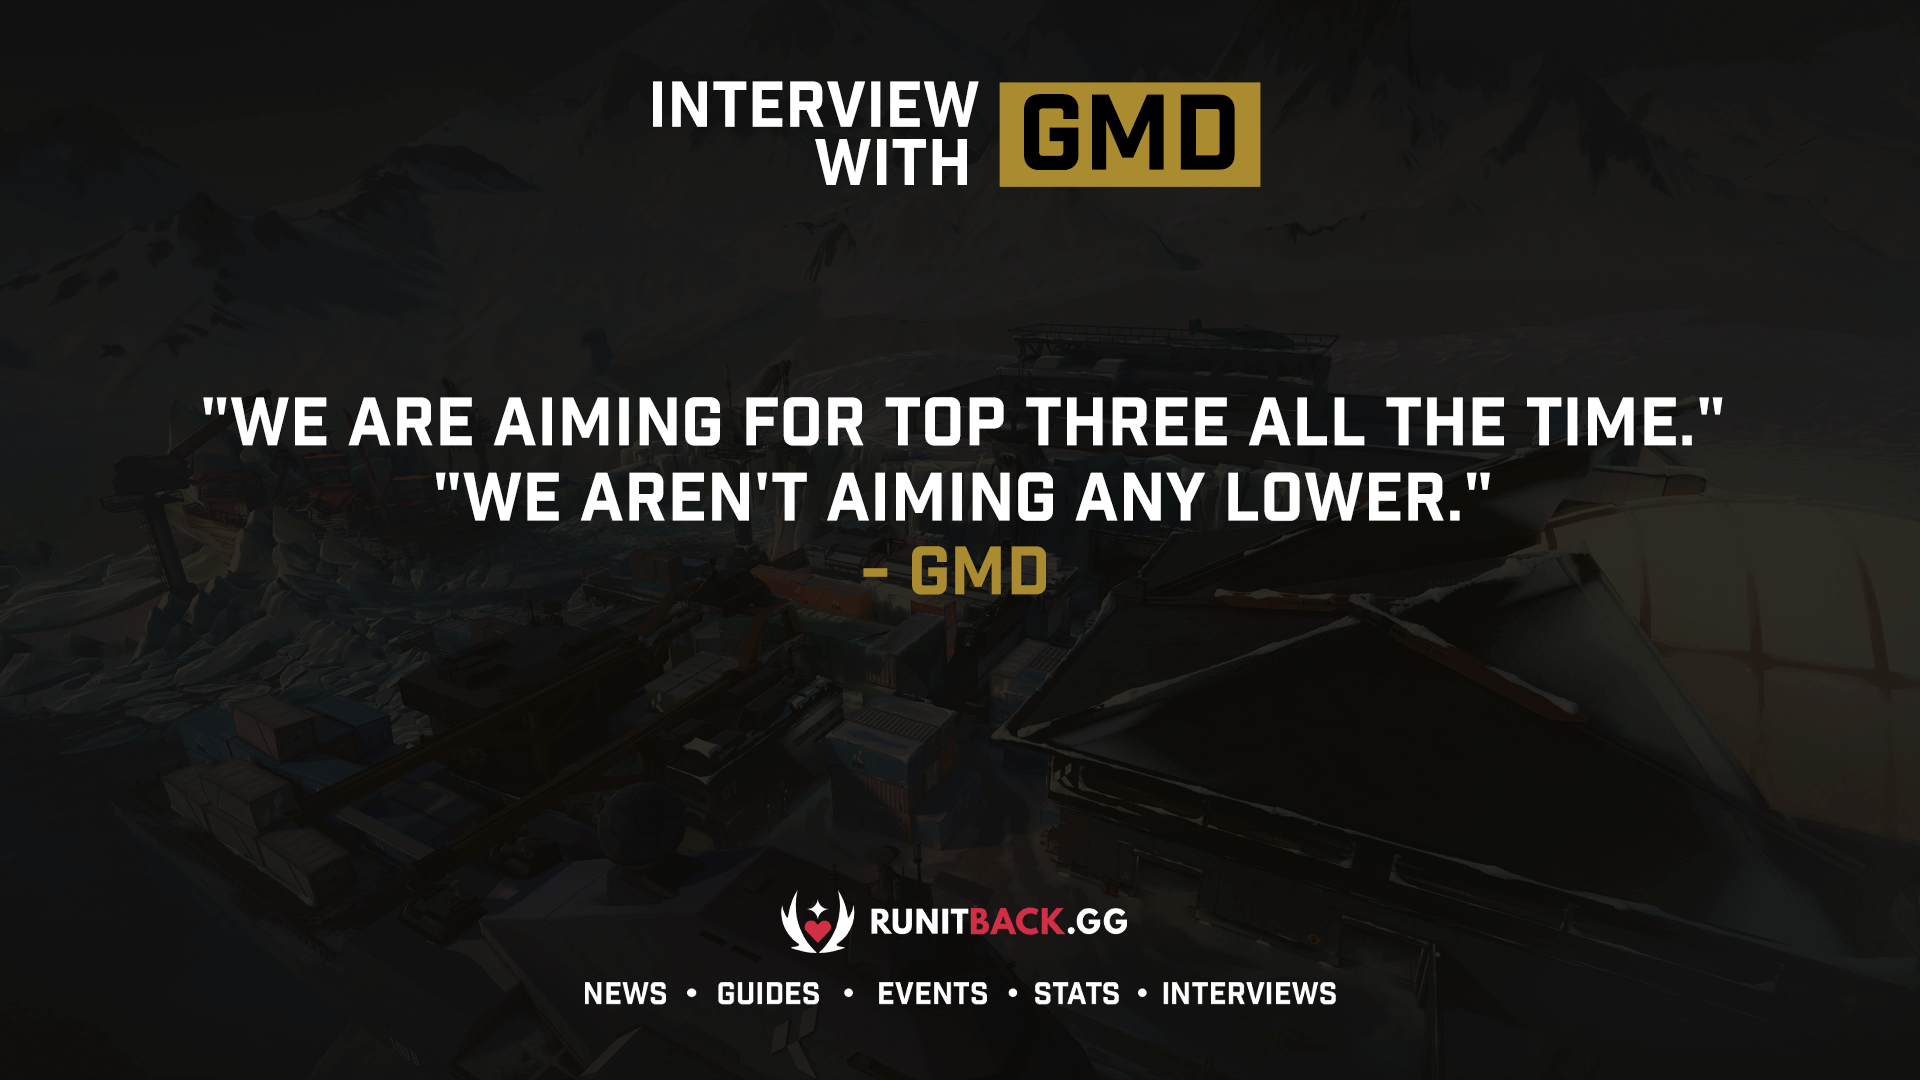 gMd is proud of his team and is aiming to be Top 3 NA